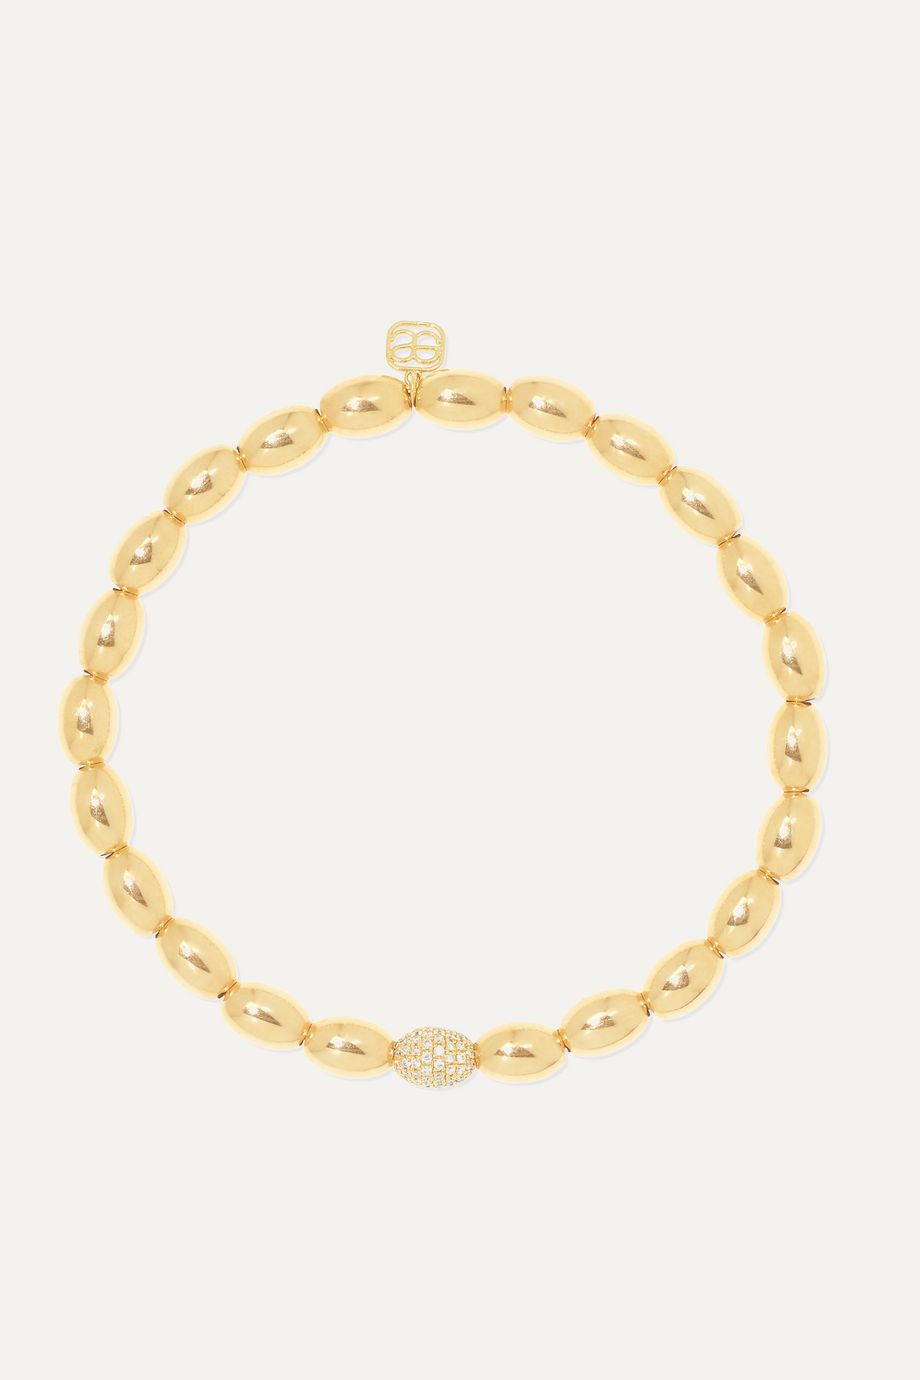 Sydney Evan 14-karat gold diamond bracelet